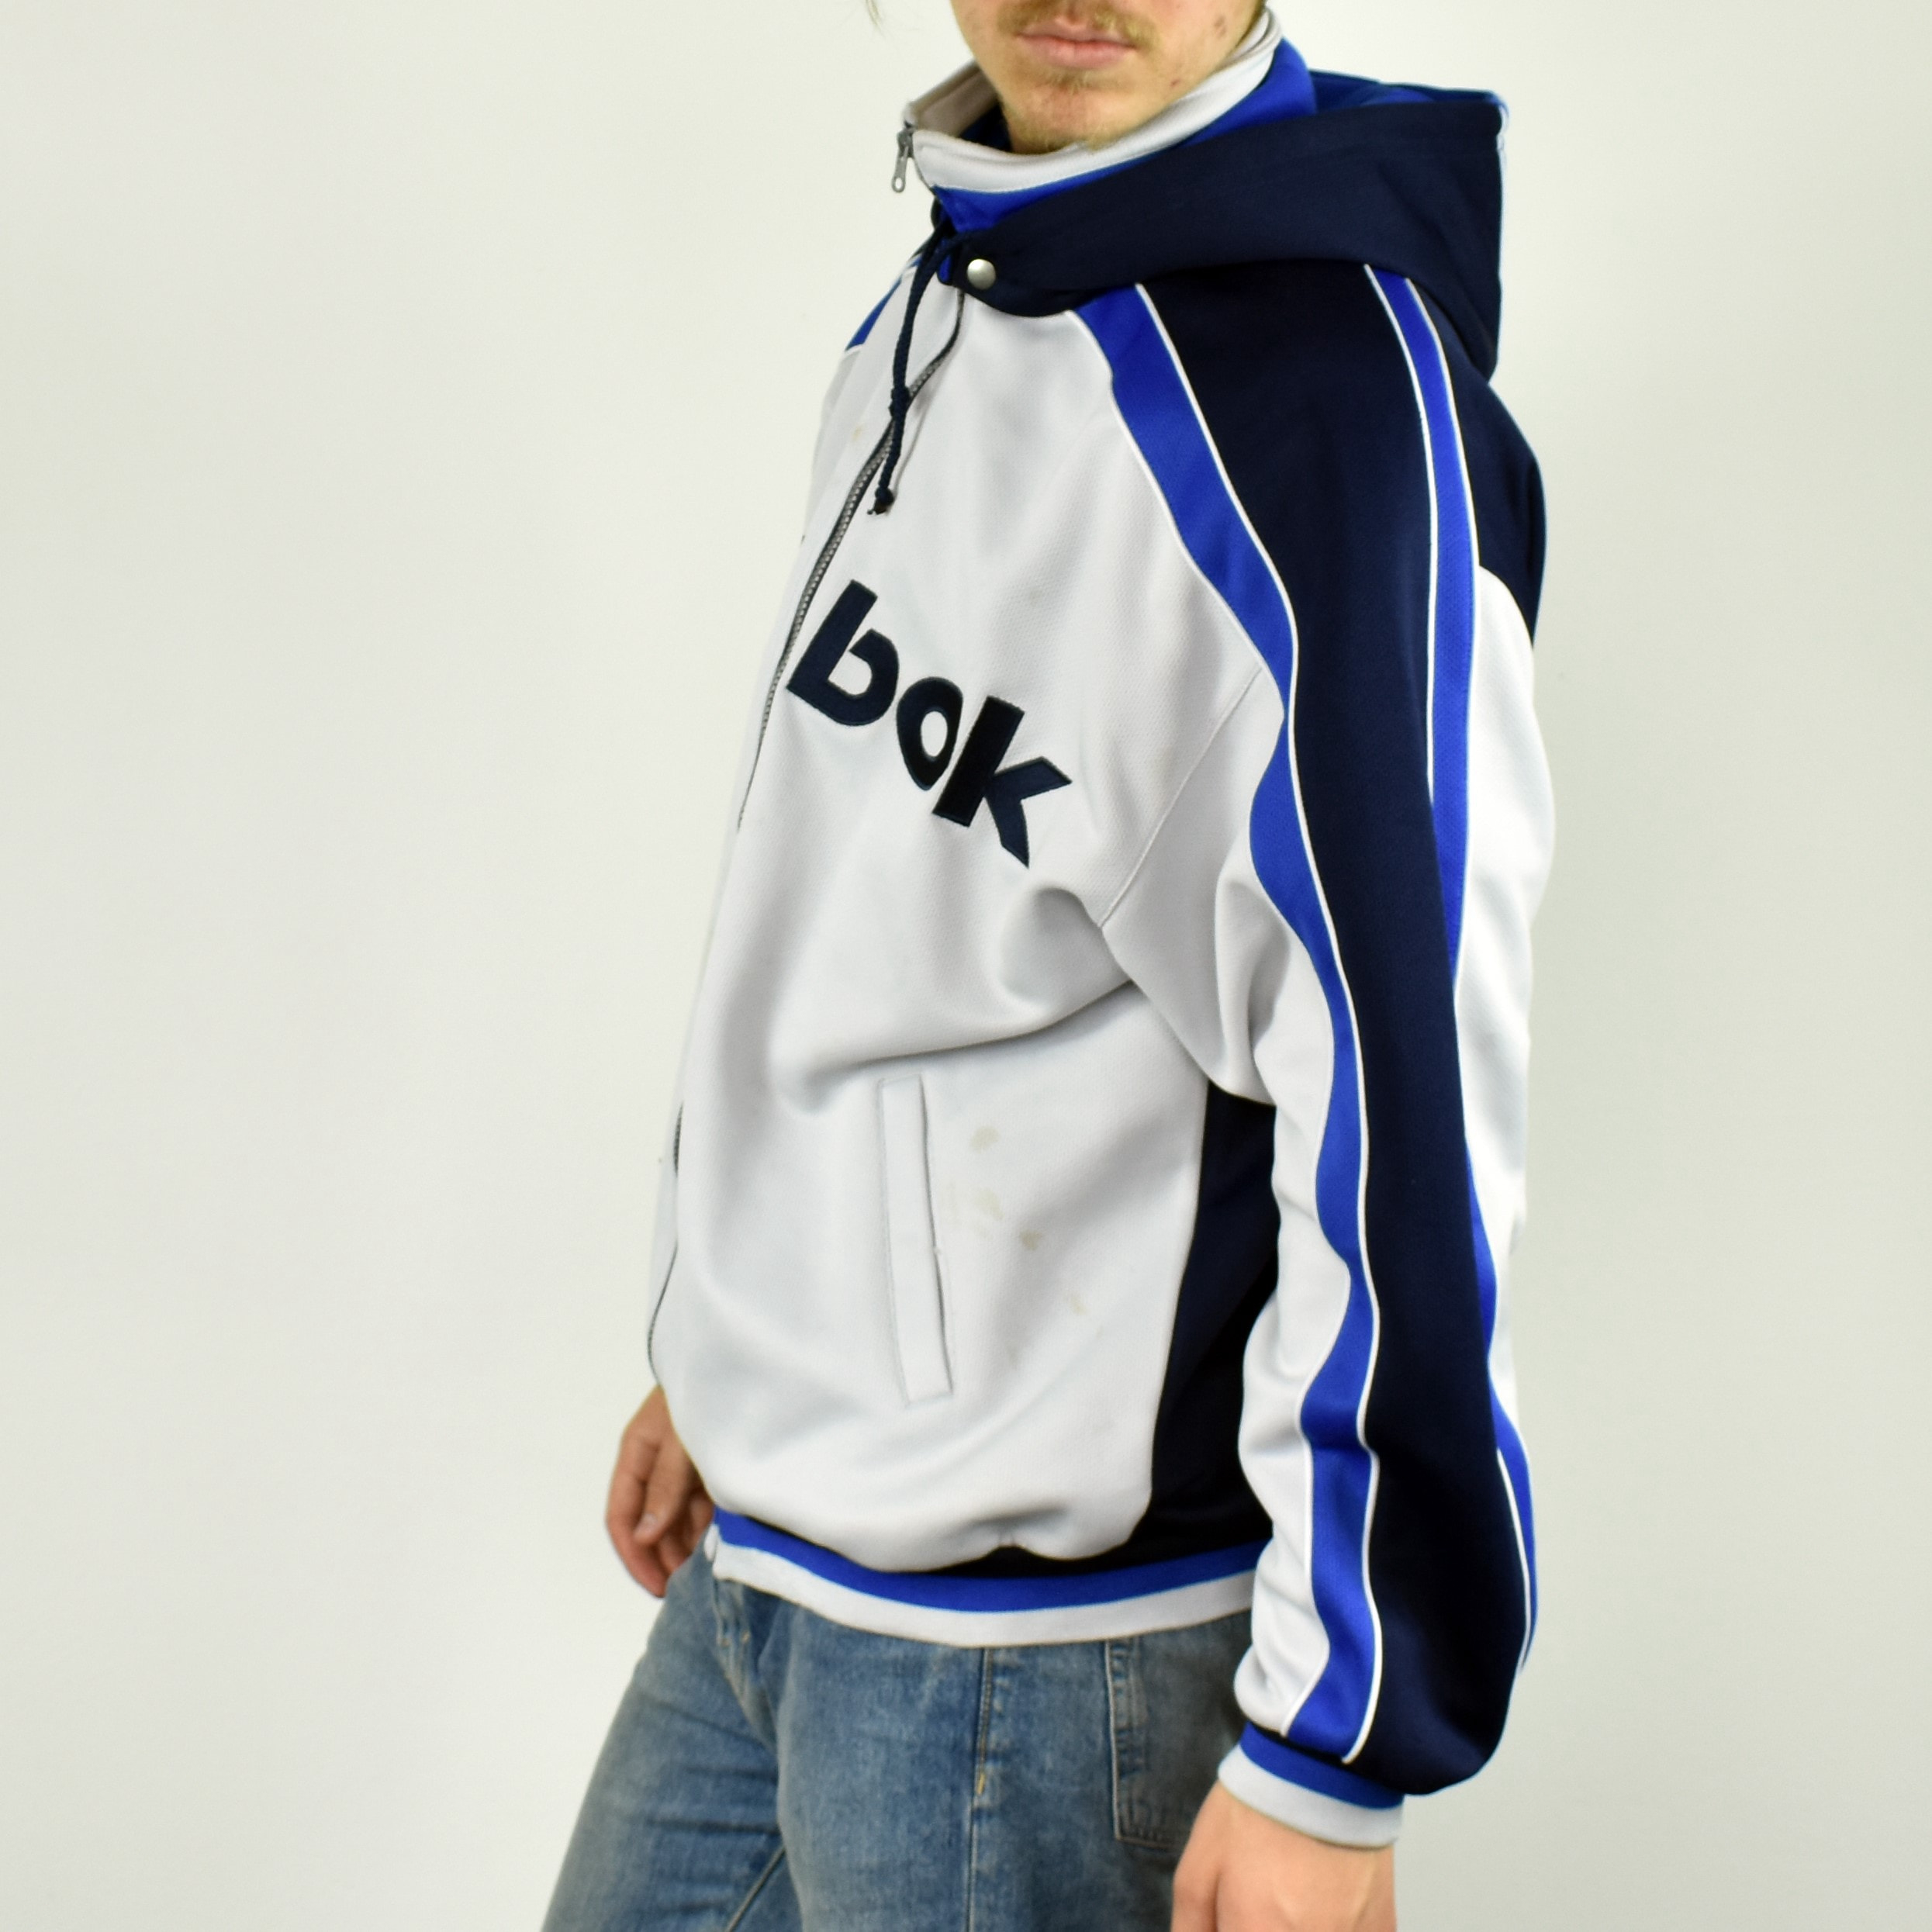 Unisex Vintage Reebok zip up hoodie track jacket in white and blue size M/L